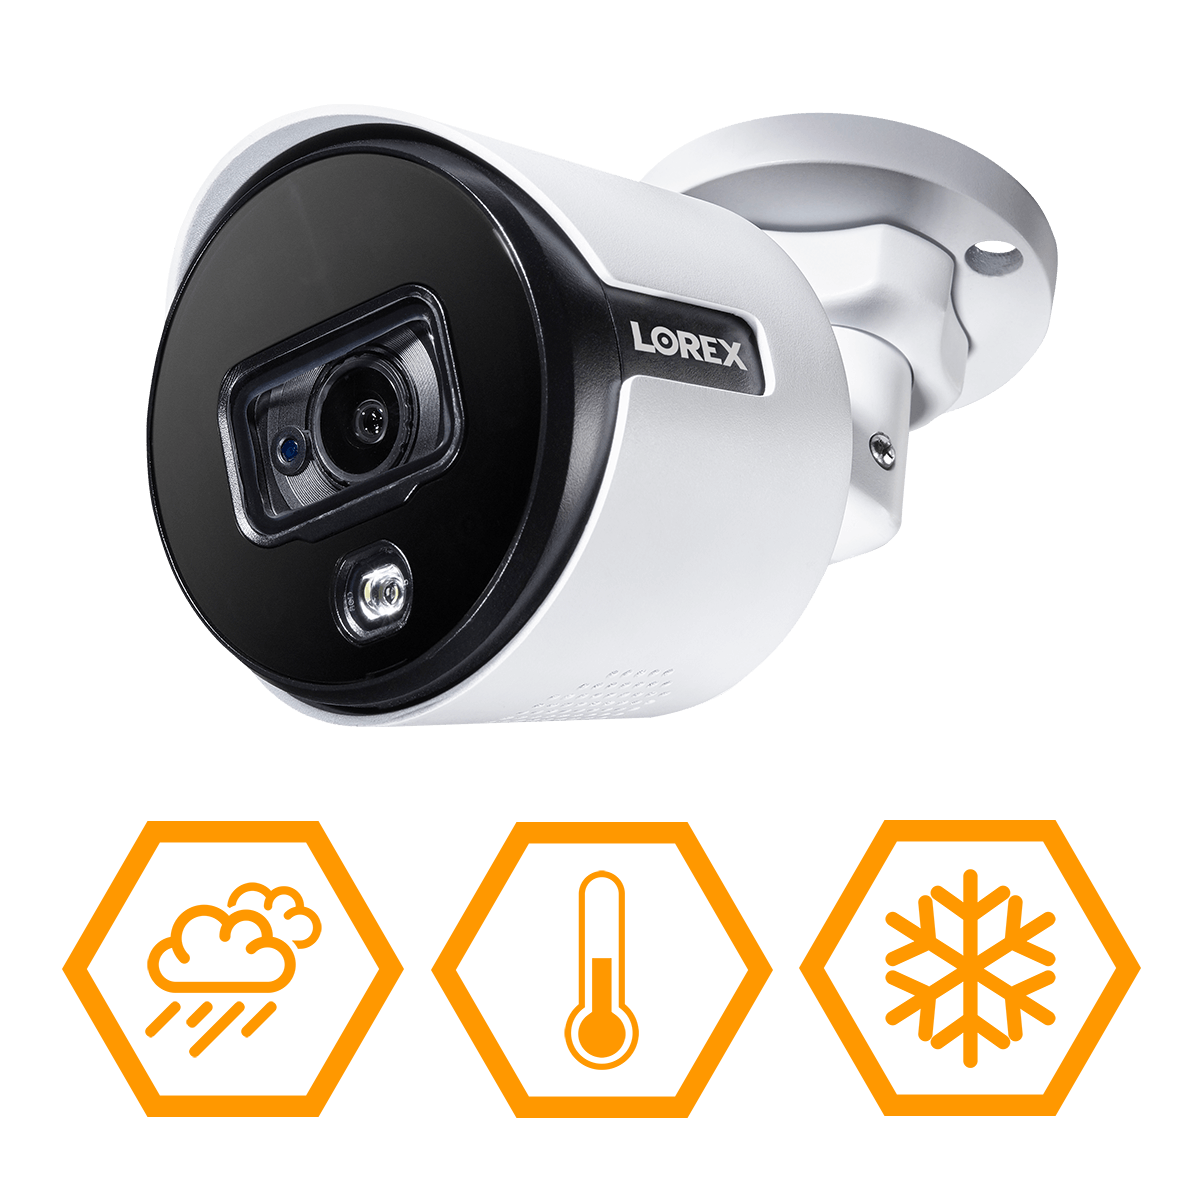 4K IP67 weatherproof security camera for year-round protection